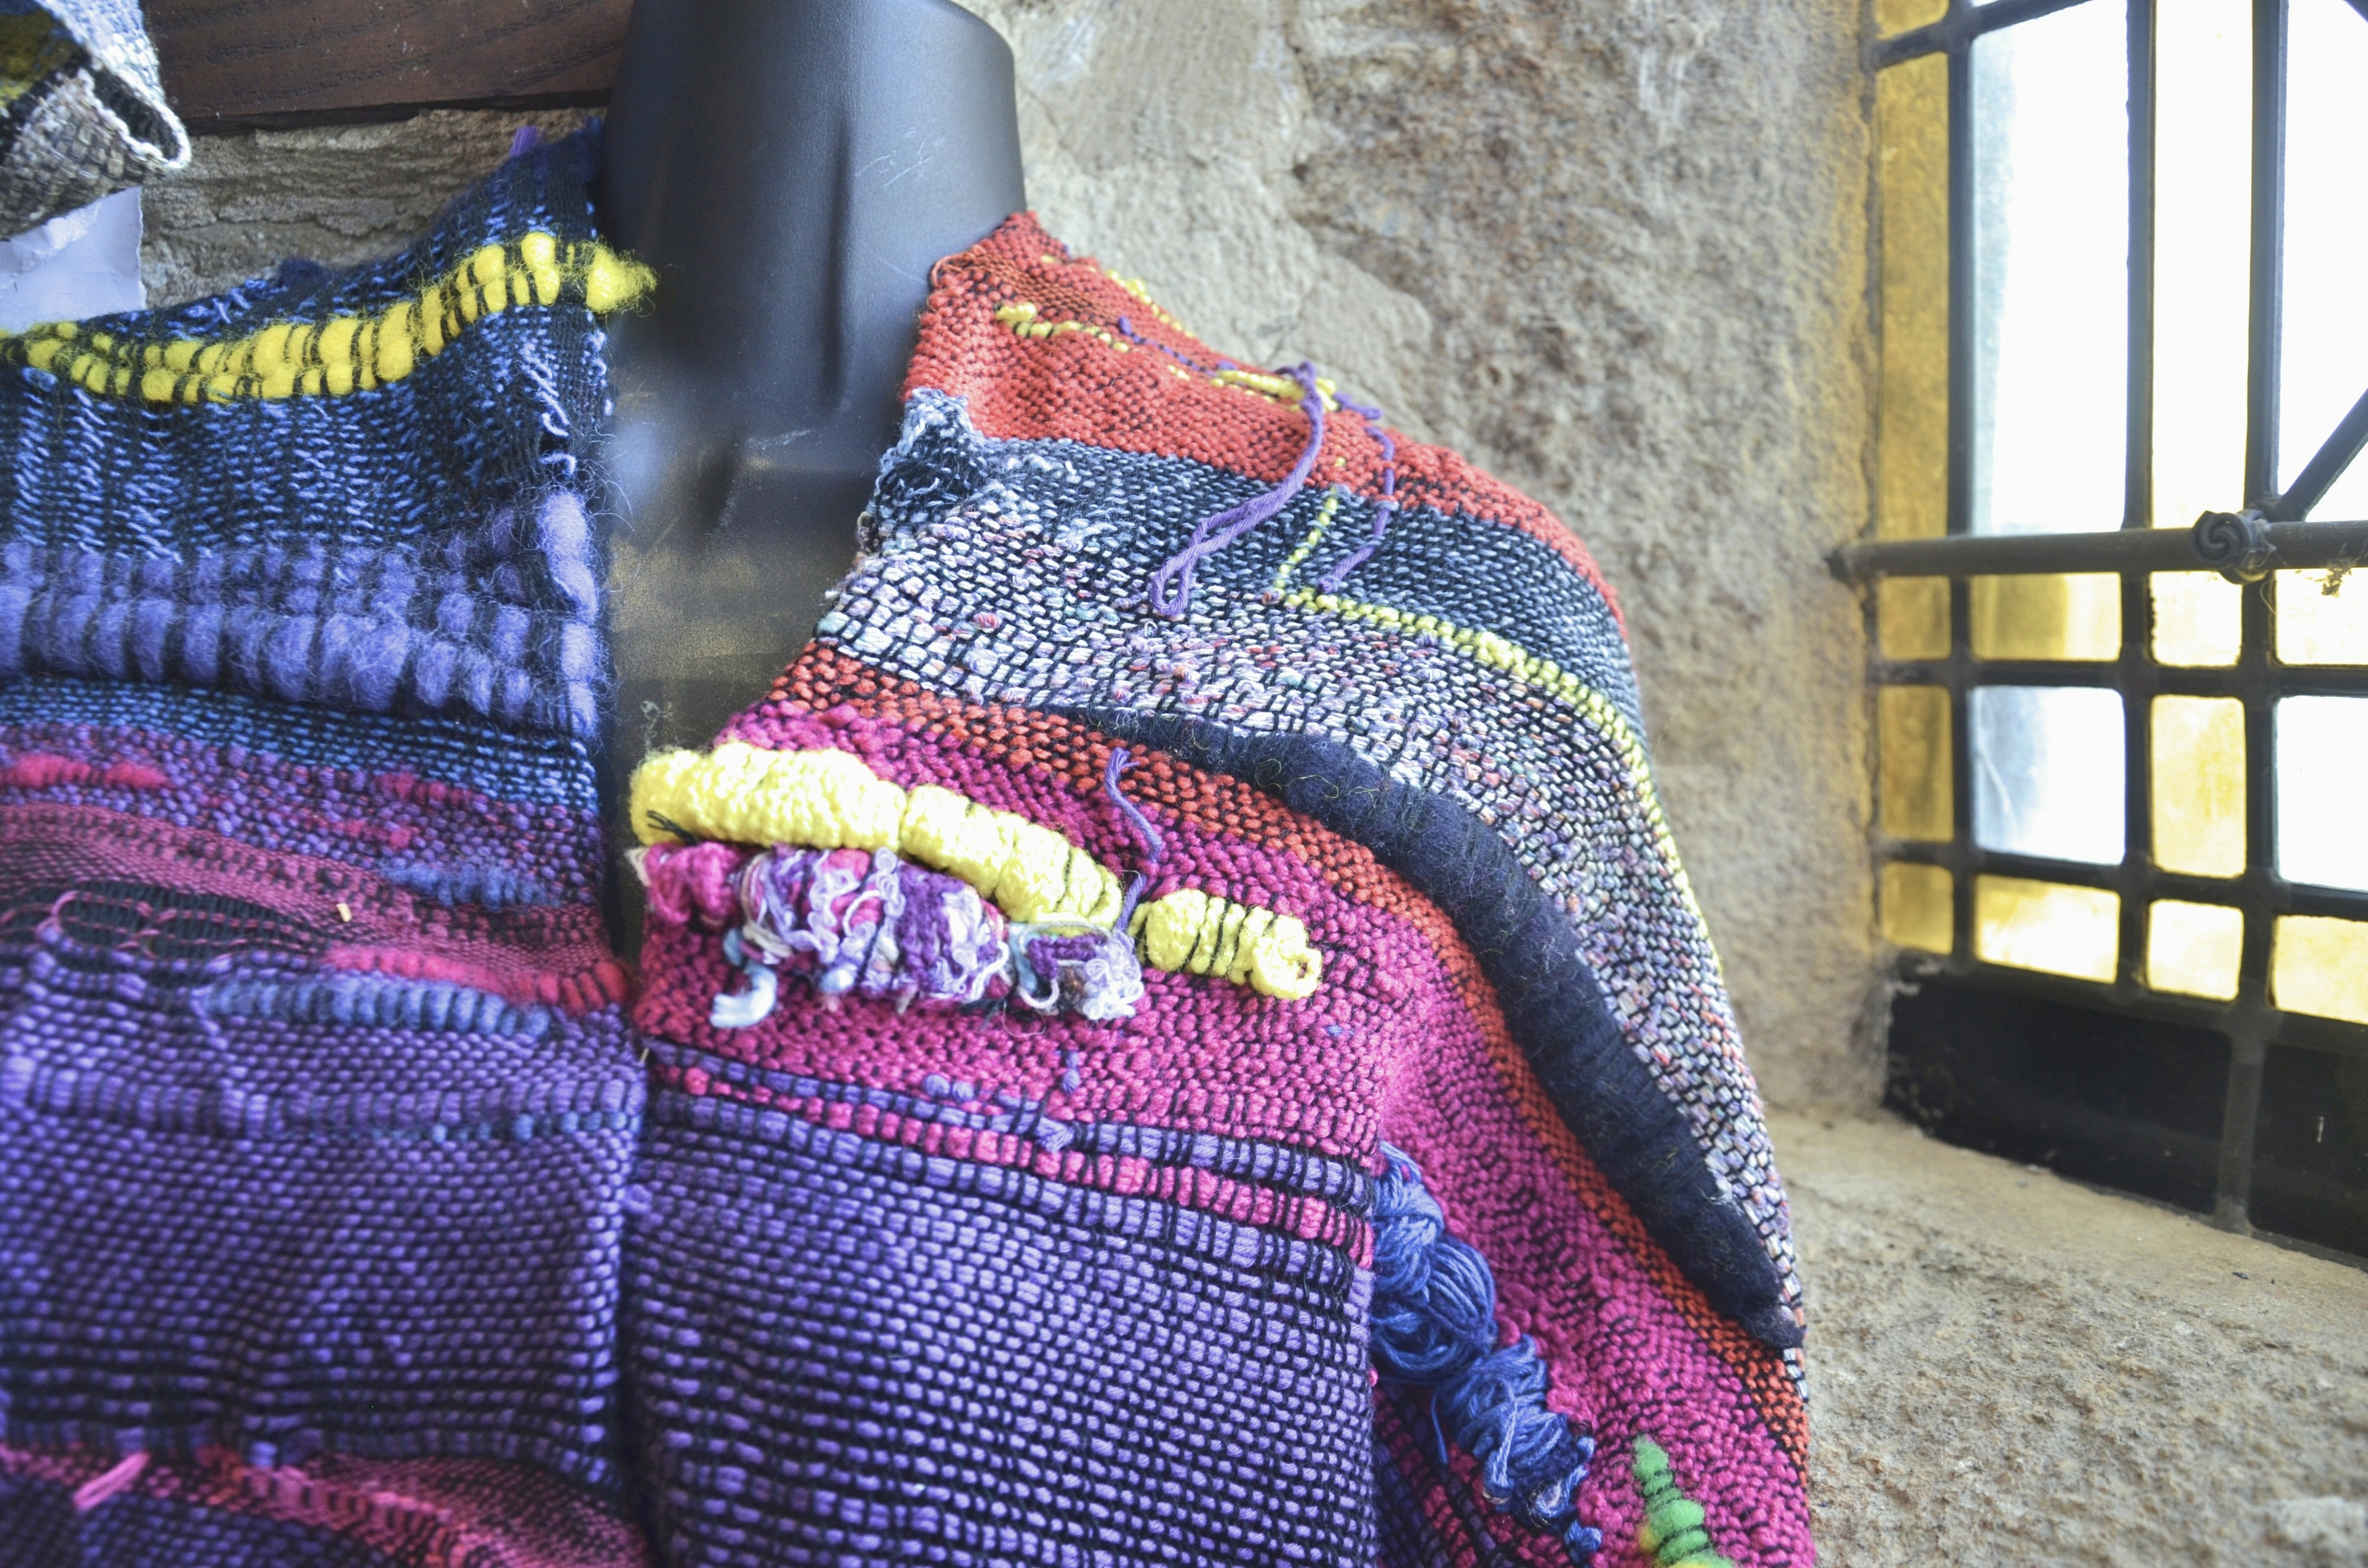 SAORI woven pink, purple and yellow jacket, made from cotton and wool fibres.